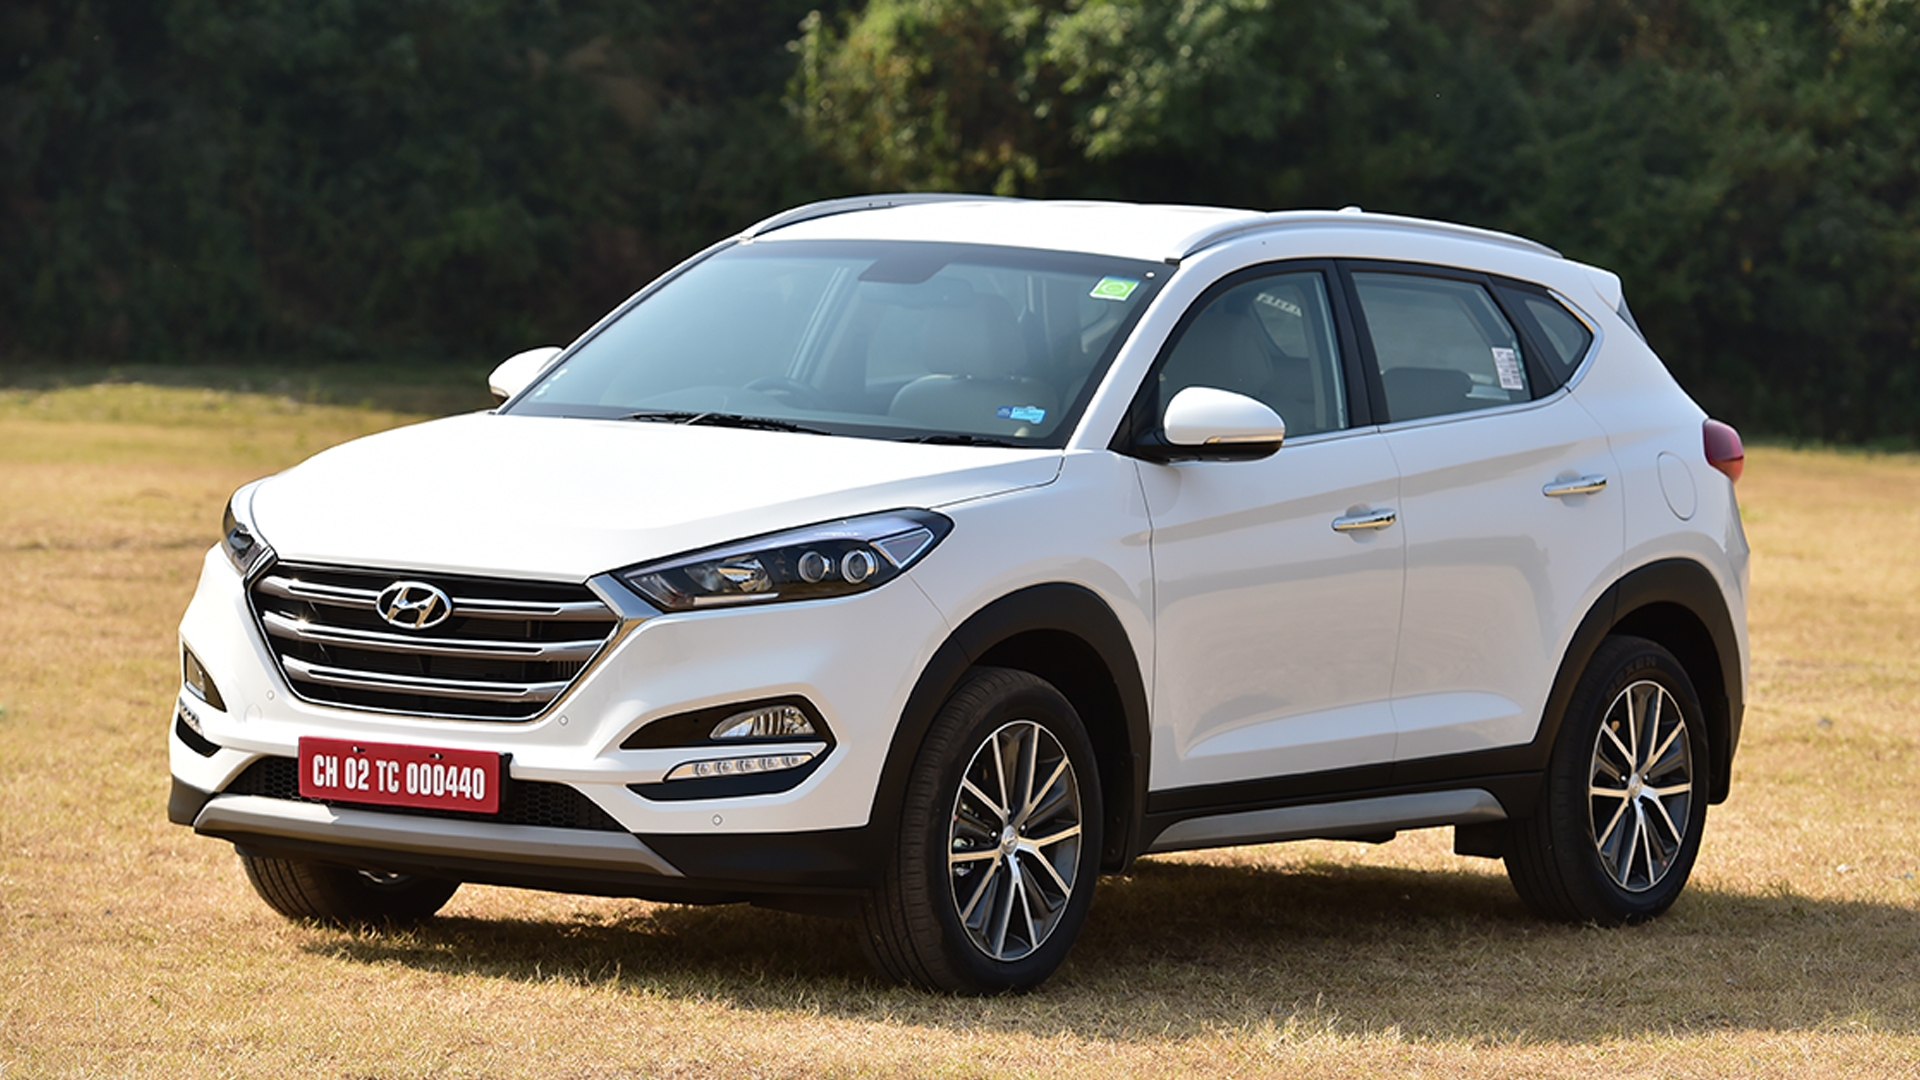 hyundai tucson 2017 price mileage reviews specification gallery overdrive. Black Bedroom Furniture Sets. Home Design Ideas